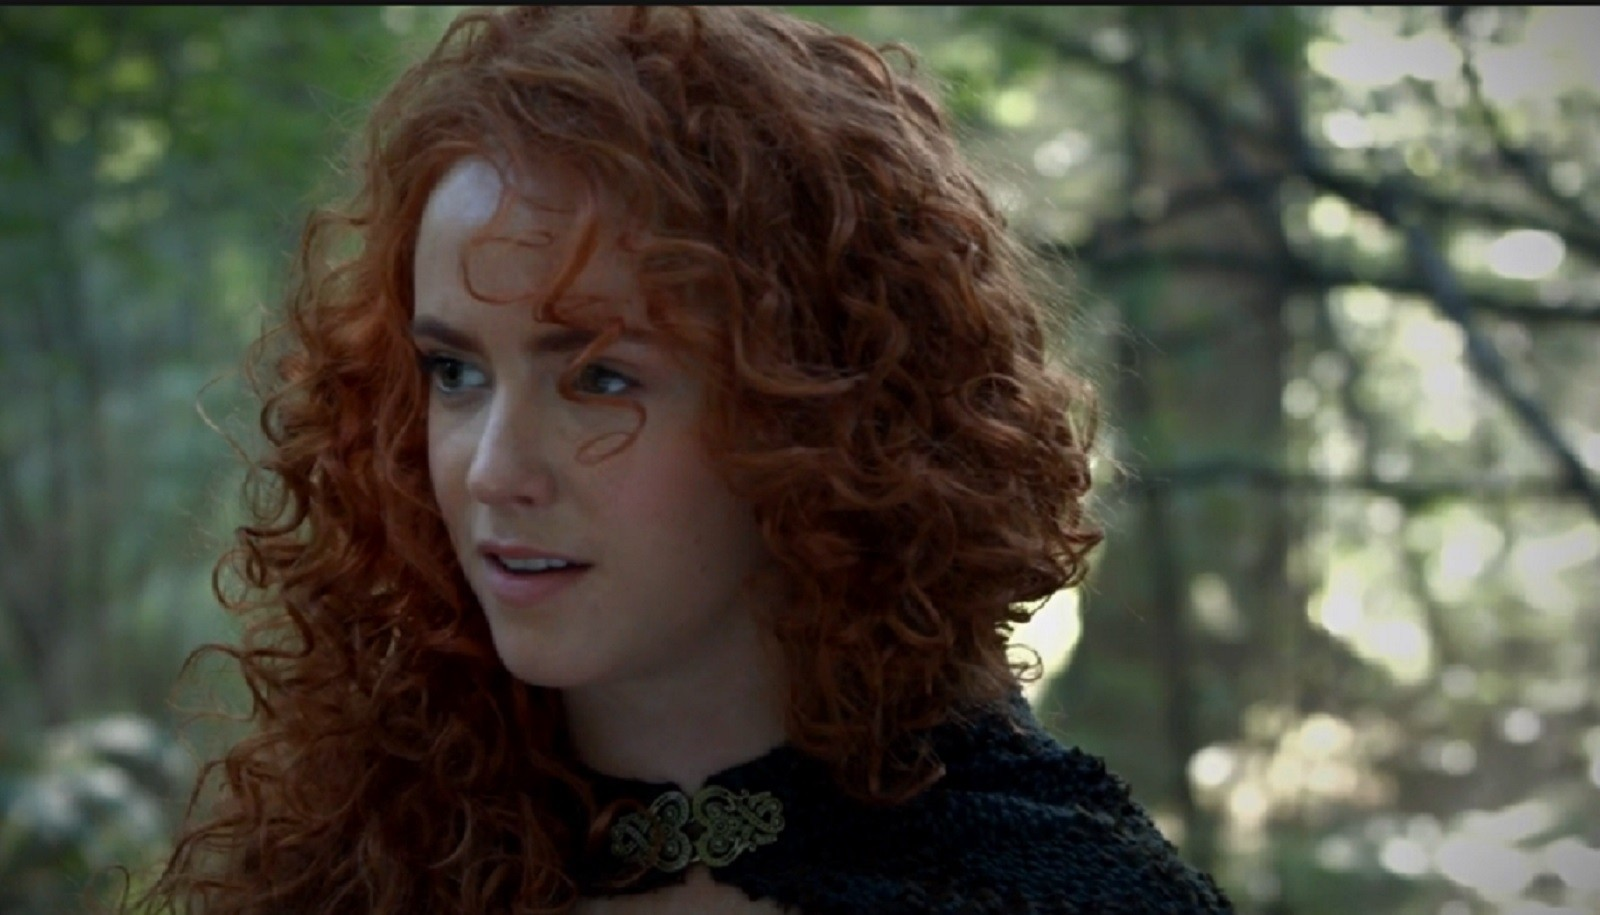 Amy Manson Once Upon A Time once upon a time- first look at brave's merida in action